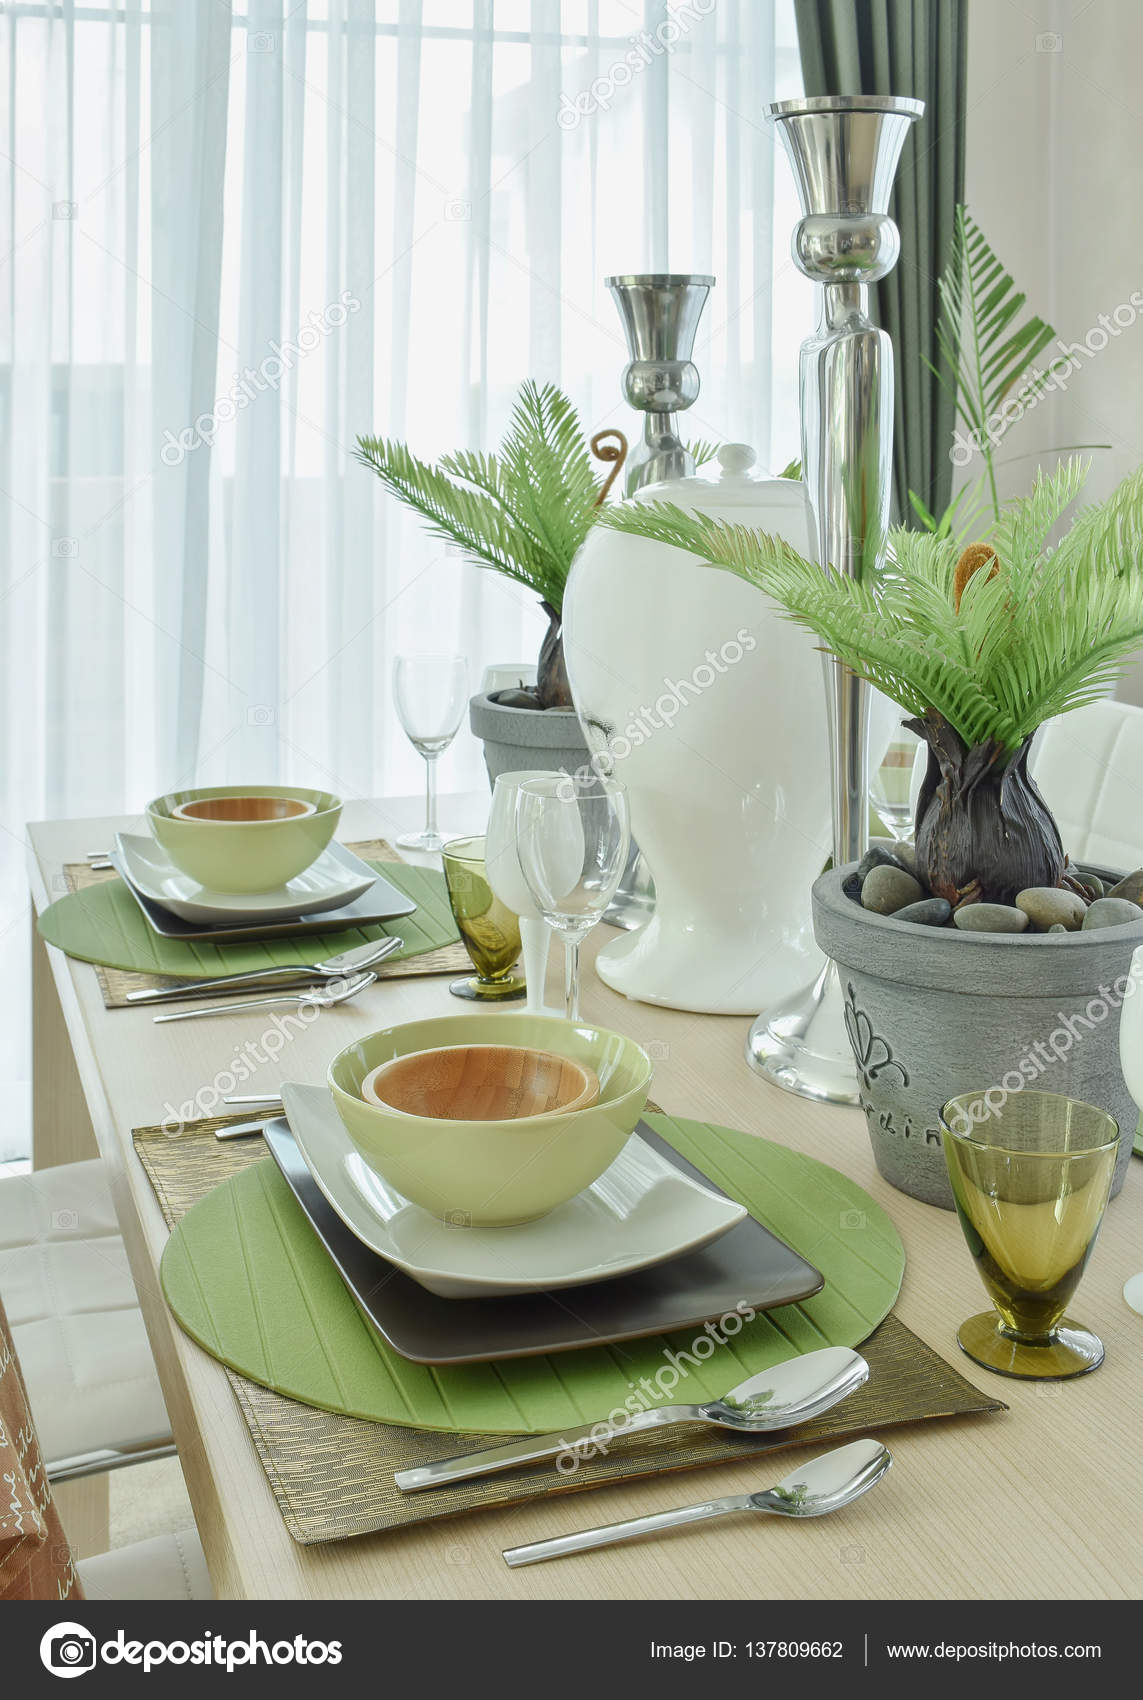 Beautiful Modern Ceramic Tableware In Green Color Scheme Setting On Dining Table Stock Image